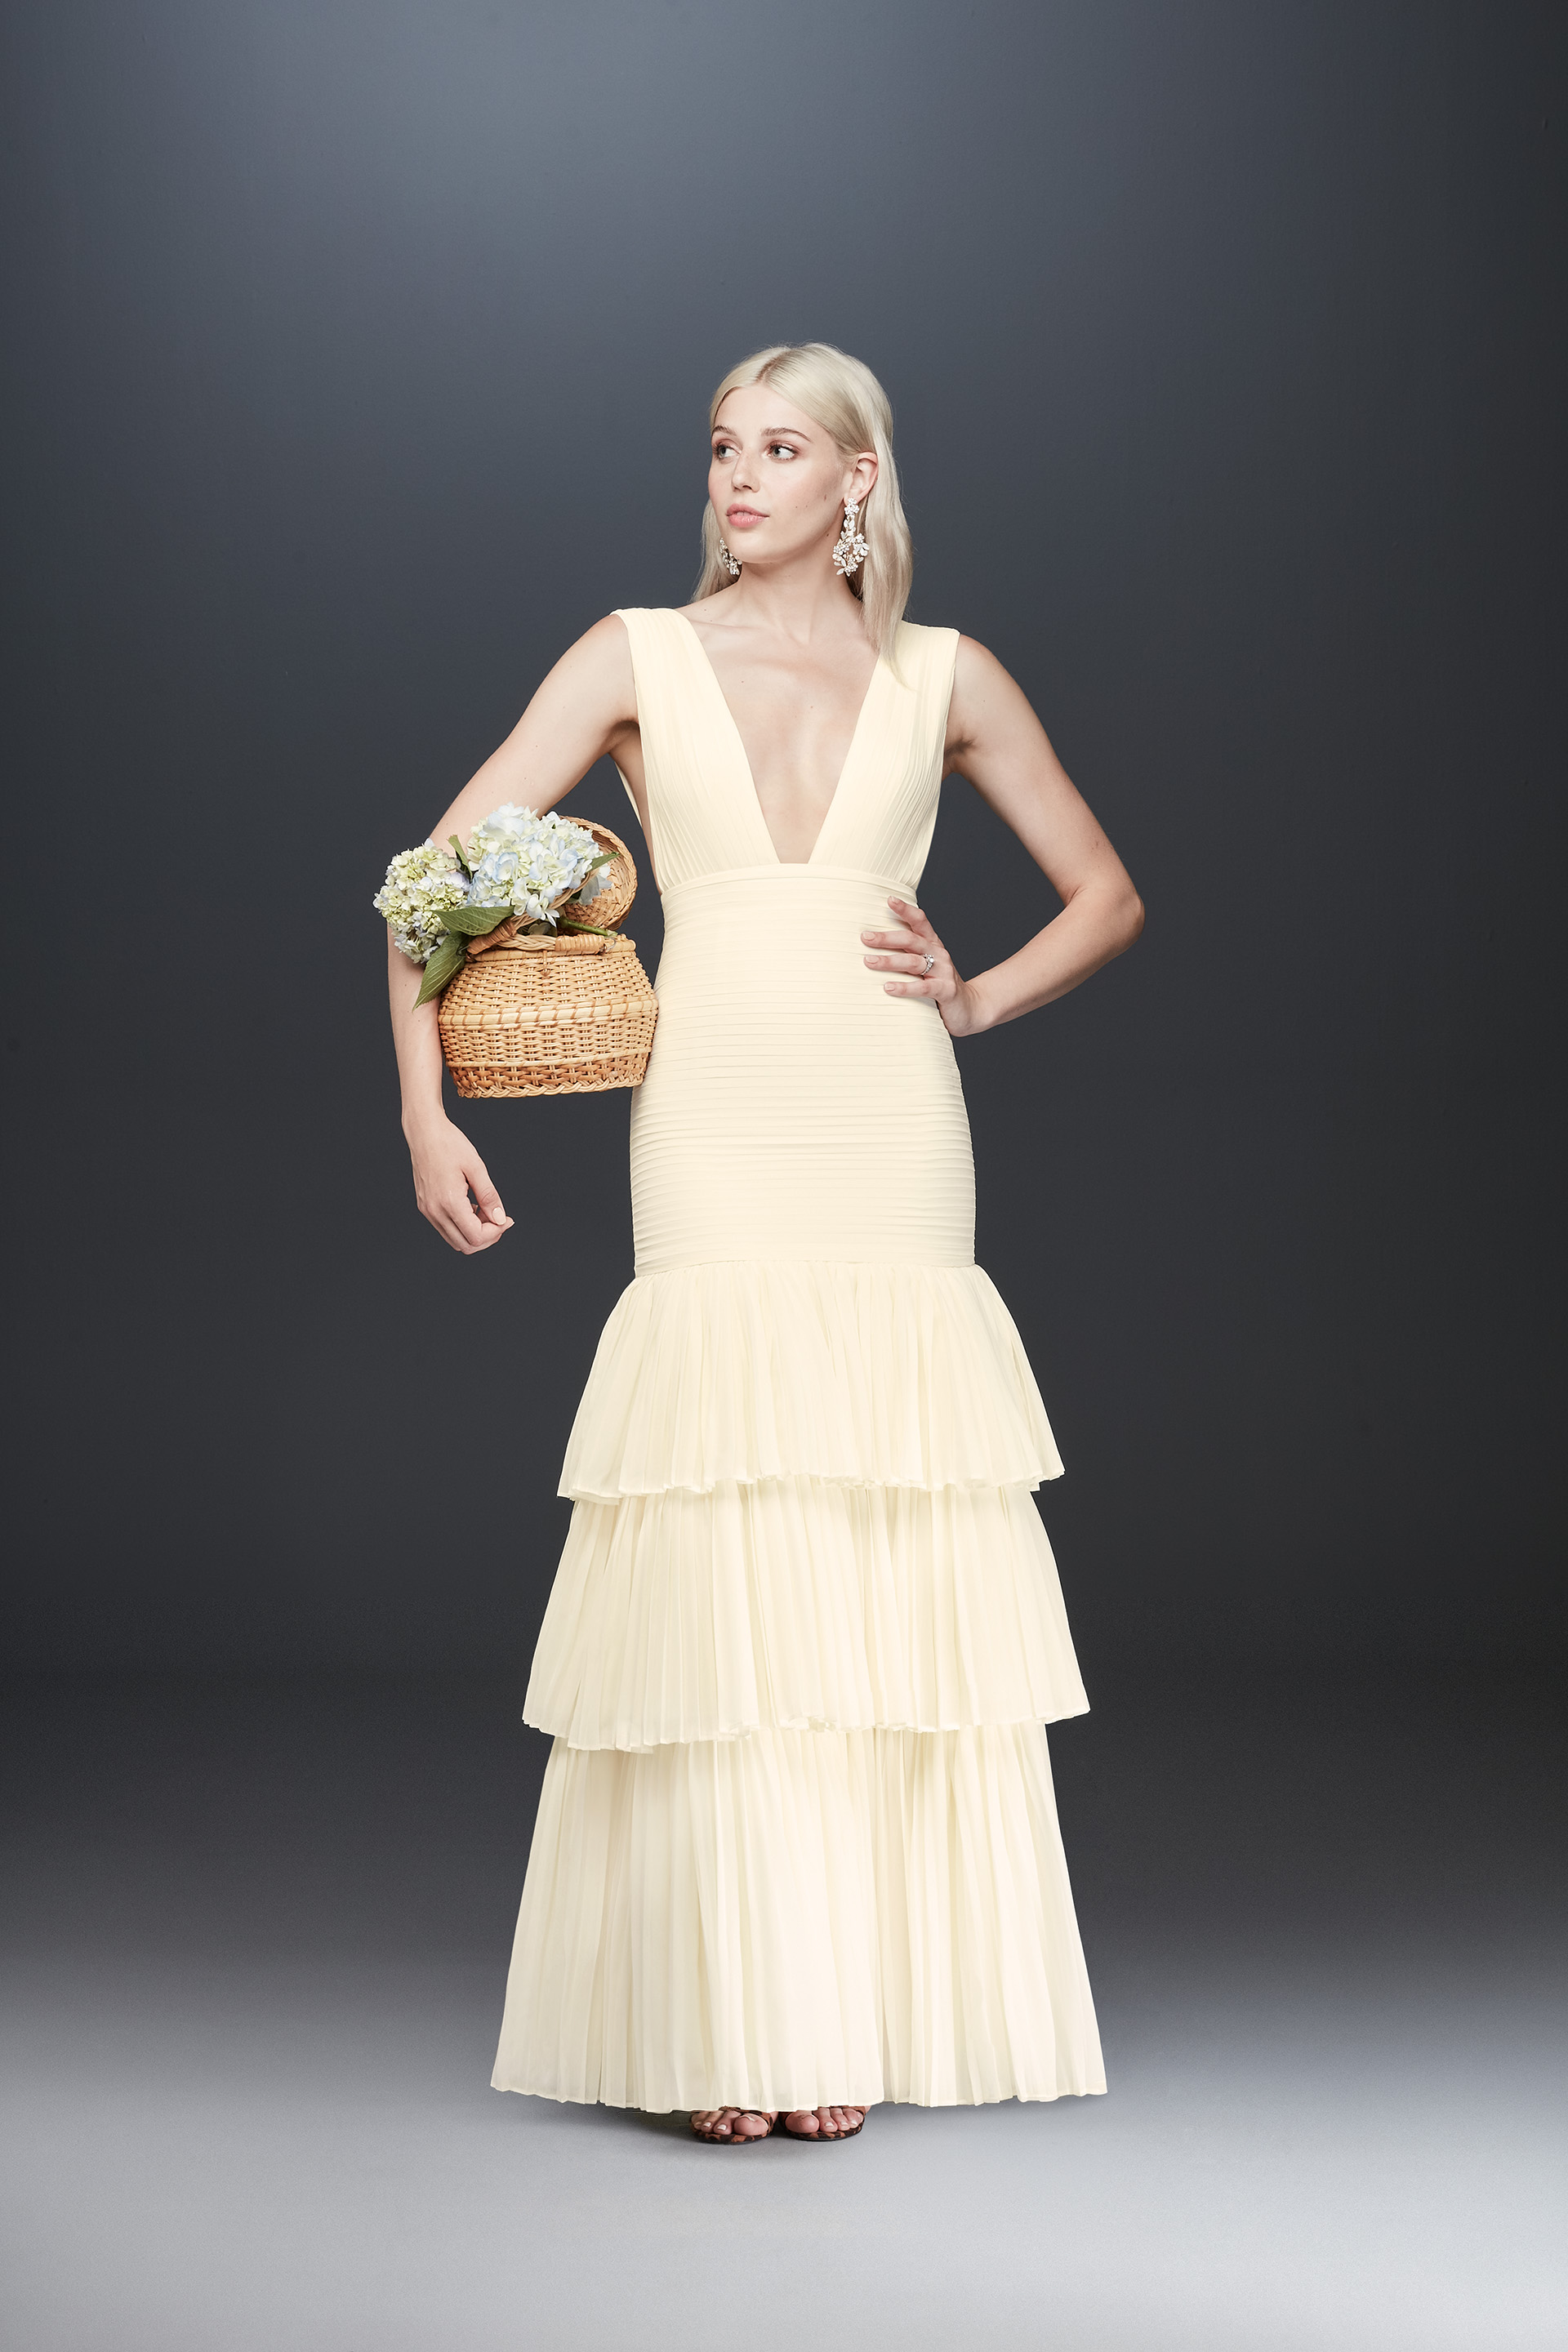 Bride holding woven basket wearing plunging neckline tiered long dress from Fame & Partners x David's Bridal collection